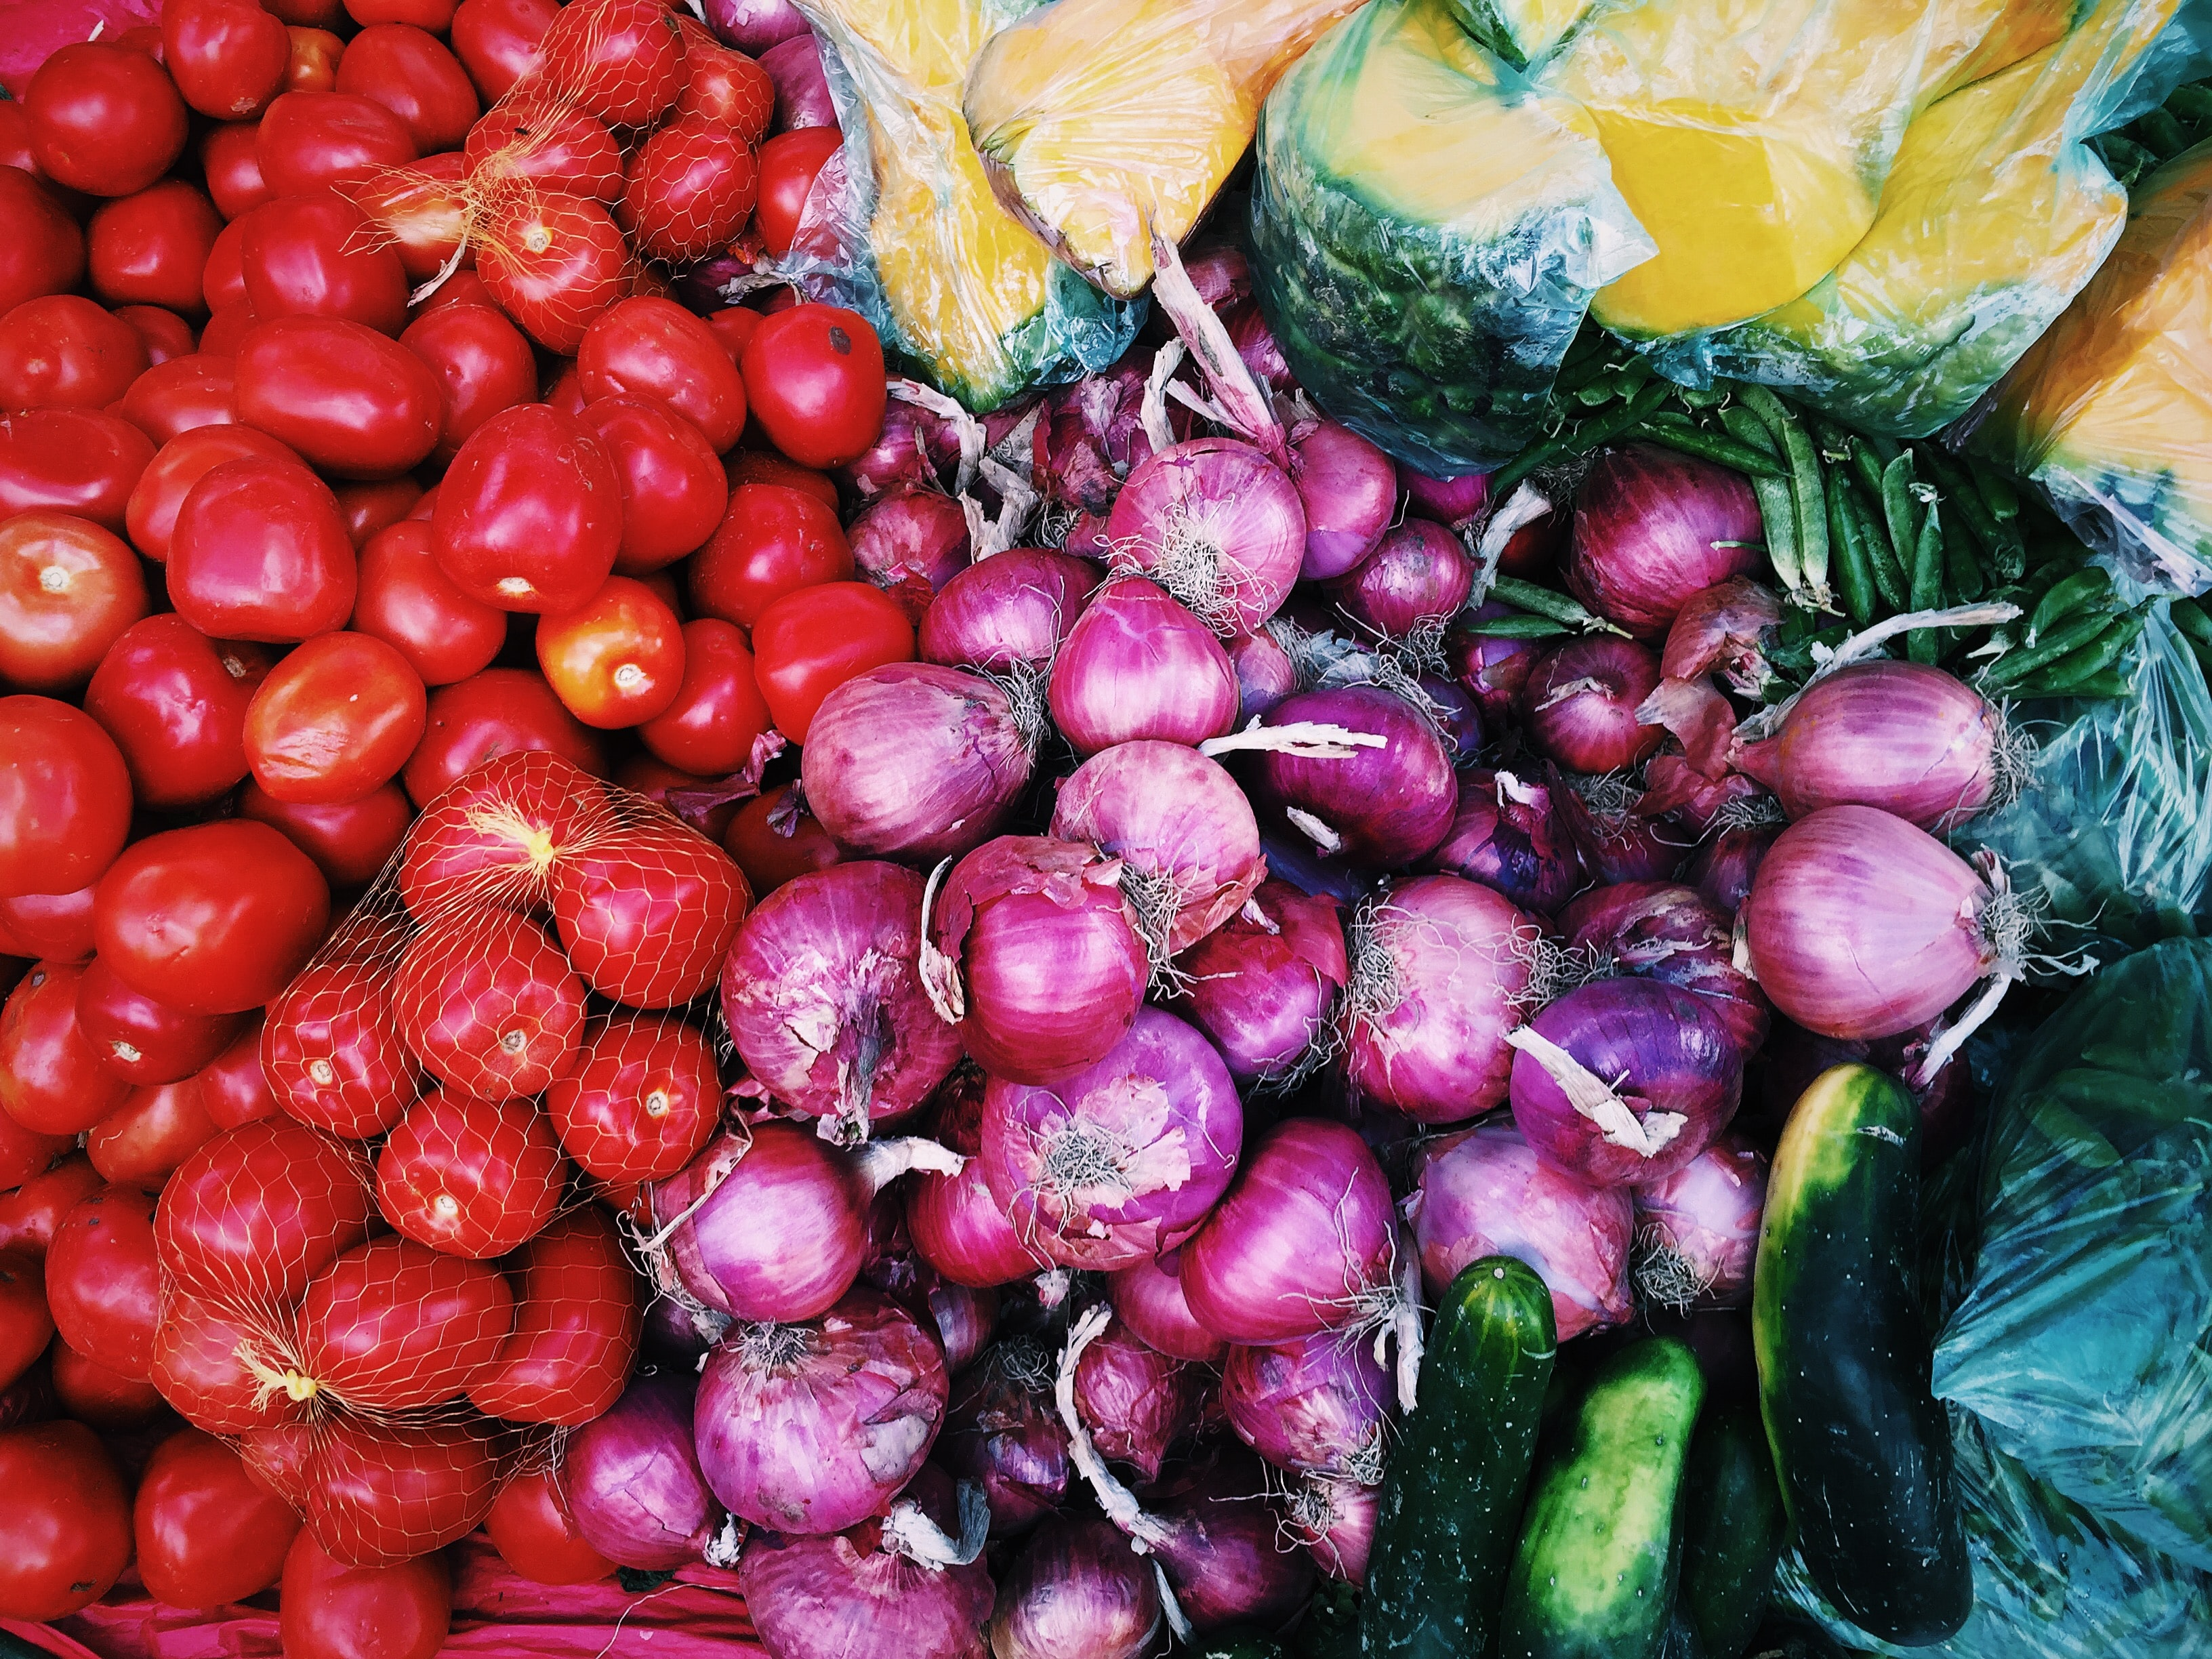 Colorful vegetables like tomatoes, onions, cucumbers, and squash at a market in Písac, Cuzco, Perú